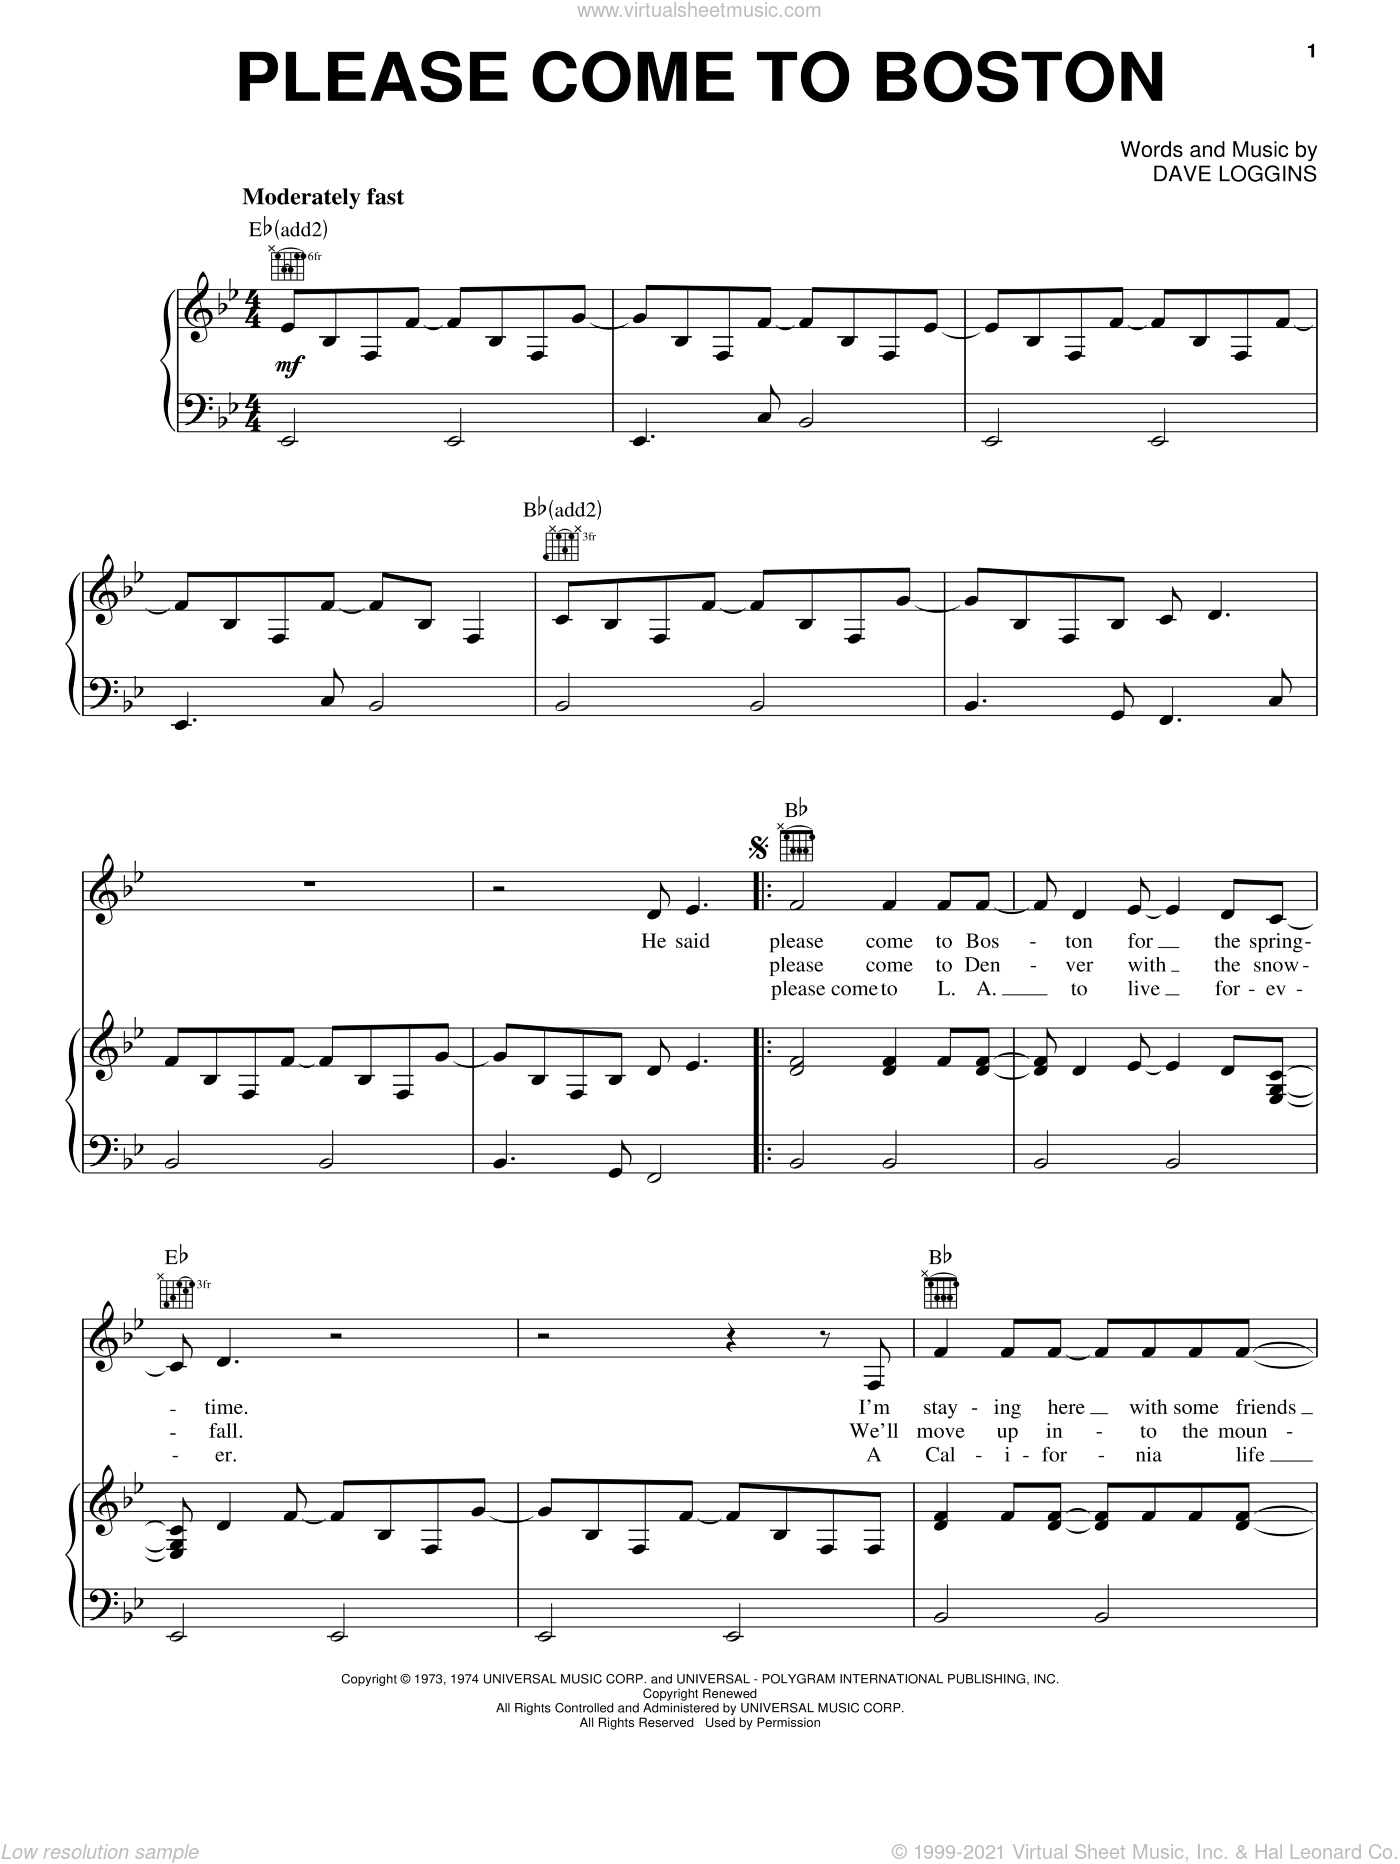 Please Come To Boston sheet music for voice, piano or guitar by Dave Loggins and Glen Campbell, intermediate skill level